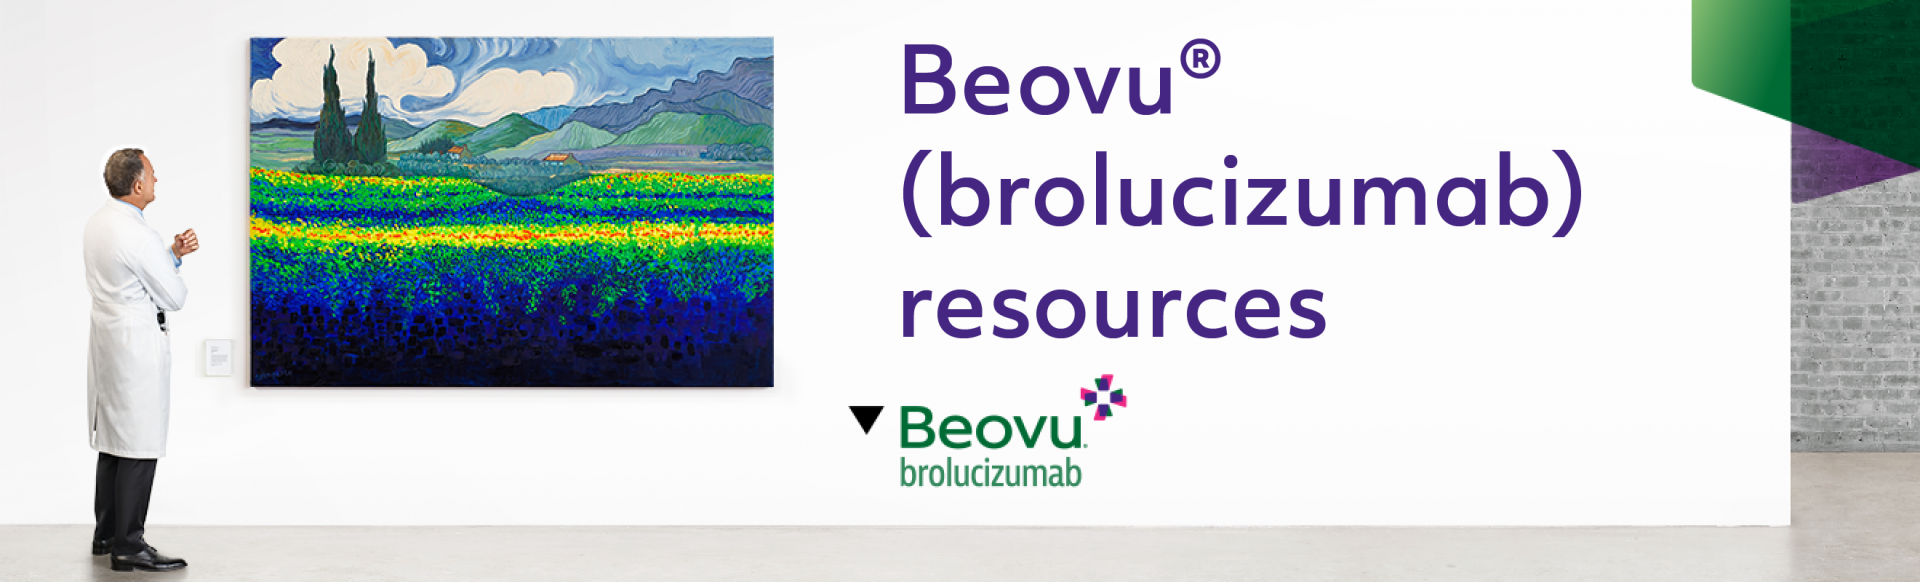 Top banner. Beovu Resources. Image of a scientist looking at a painting.